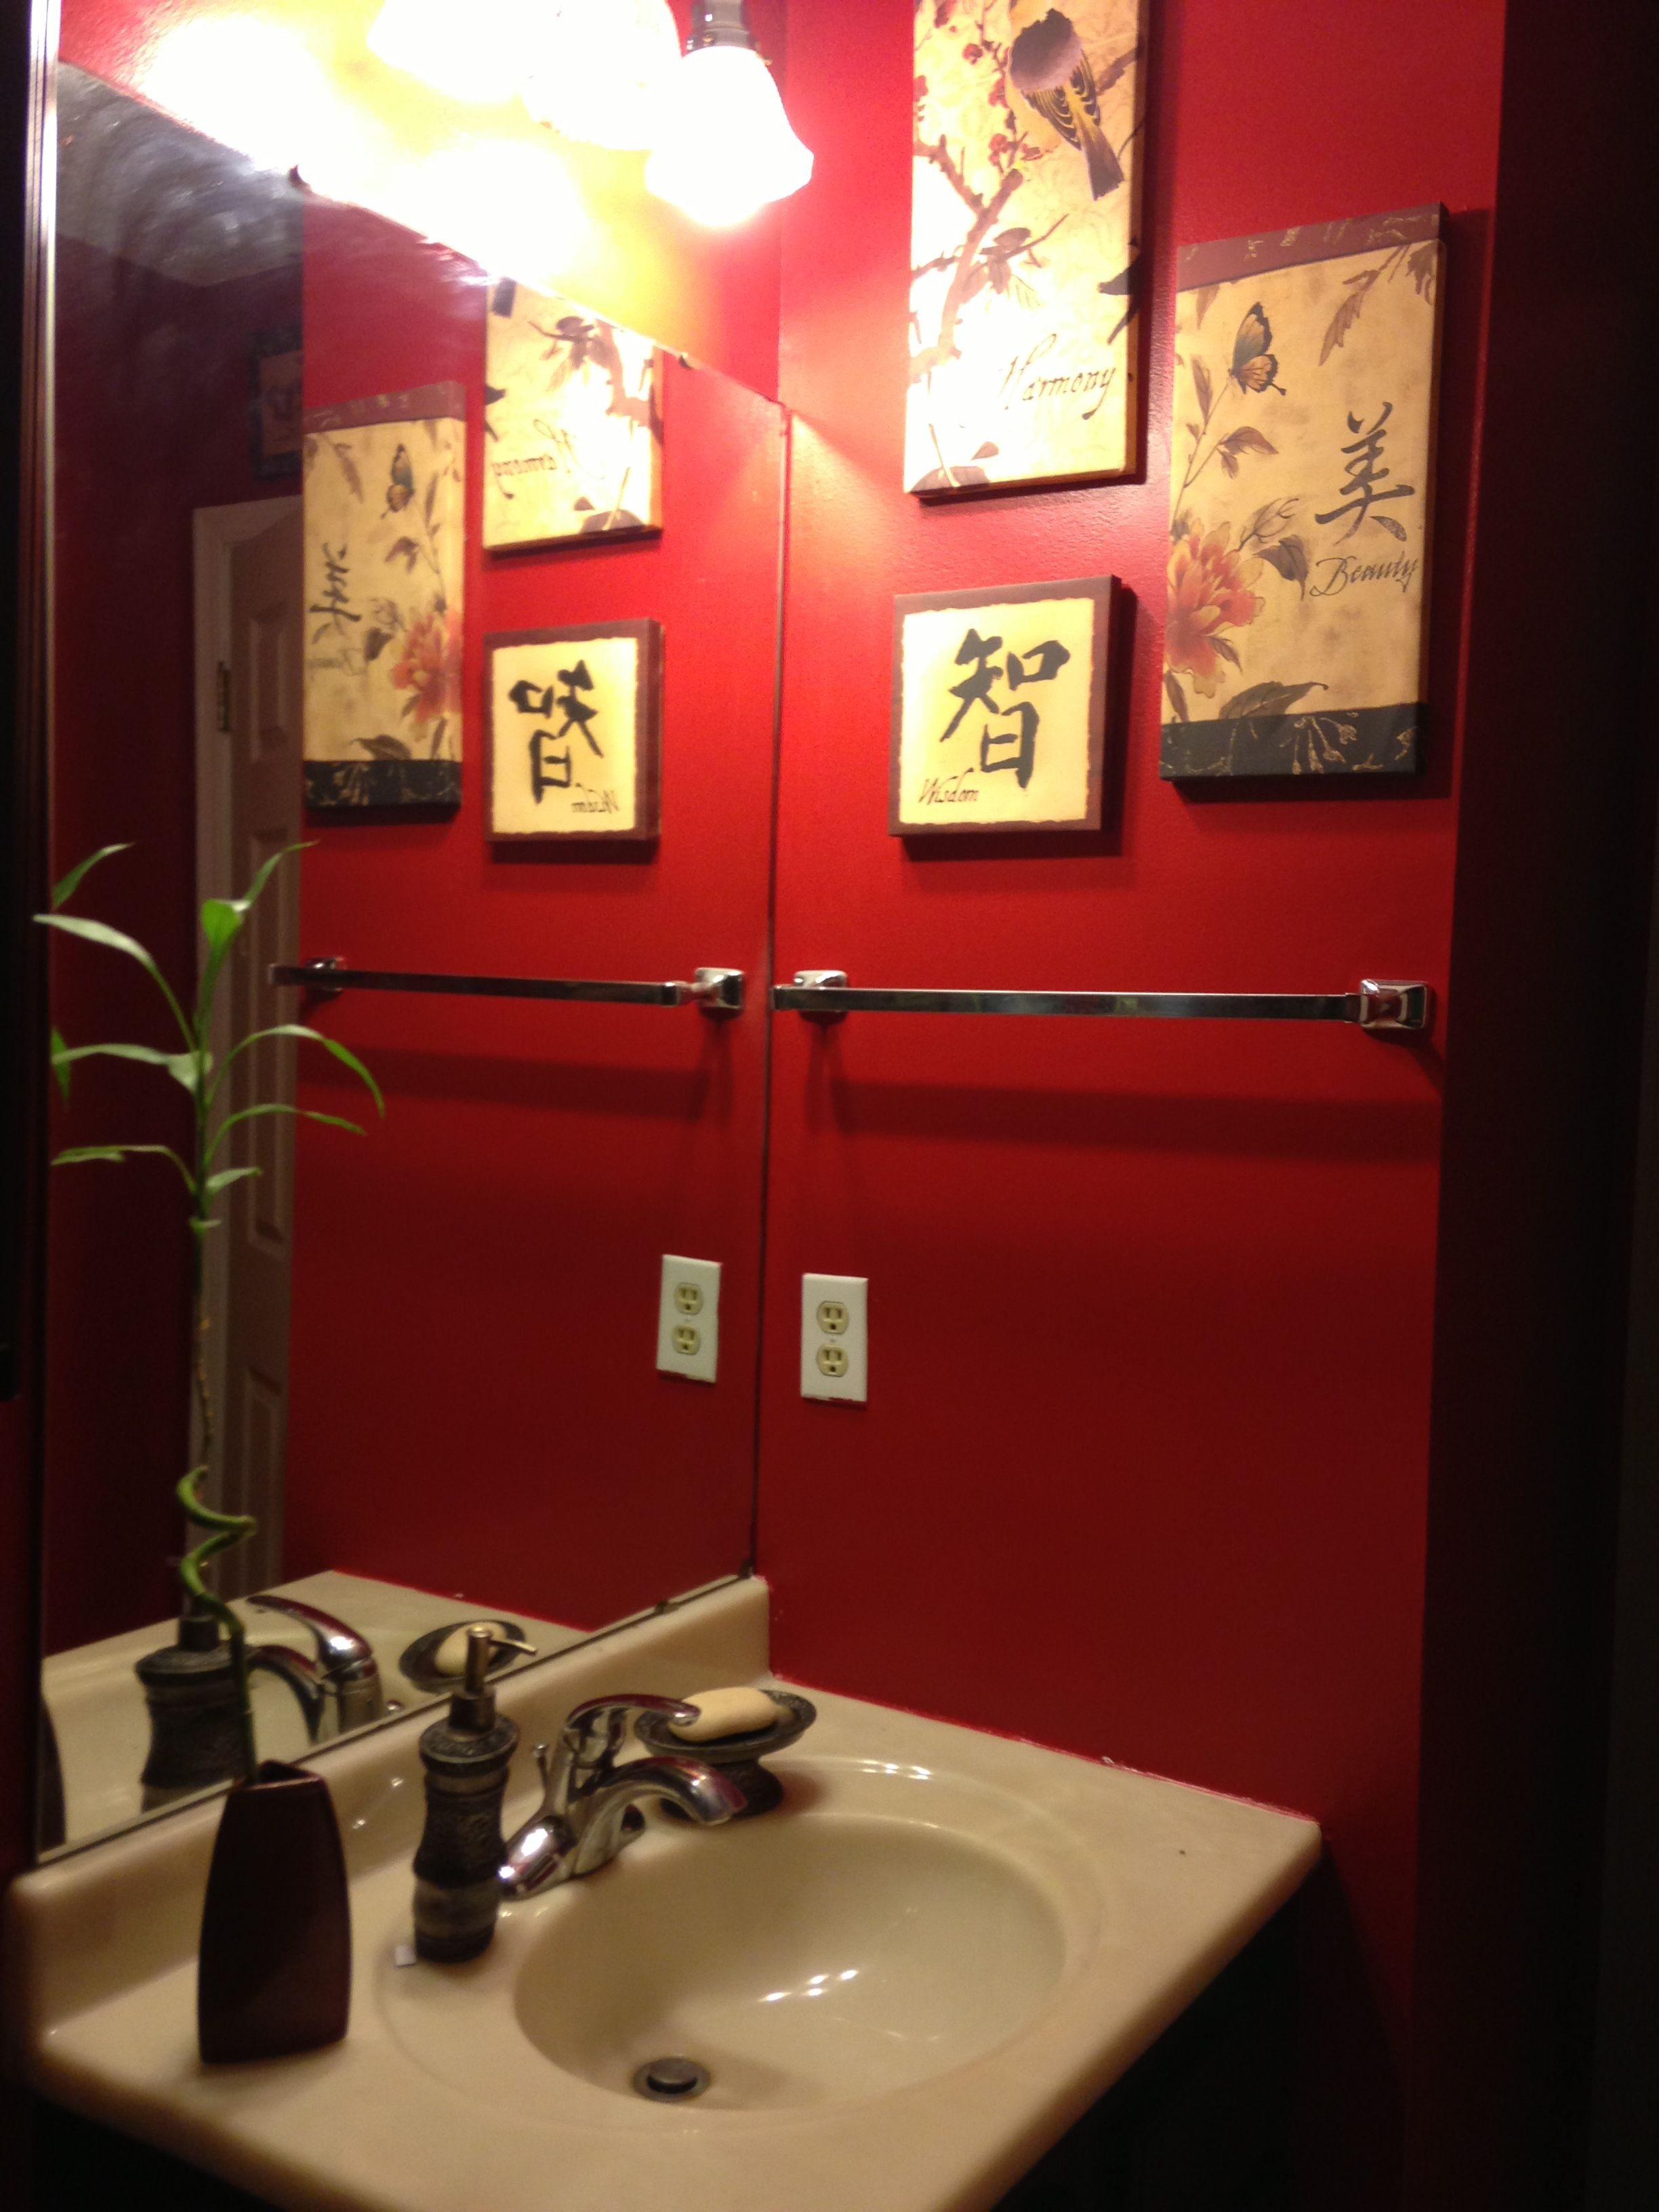 Ordinaire Bathrooms Decor · Canvas Pictures Found At Family Dollar For $15. My Chinese  Bathroom